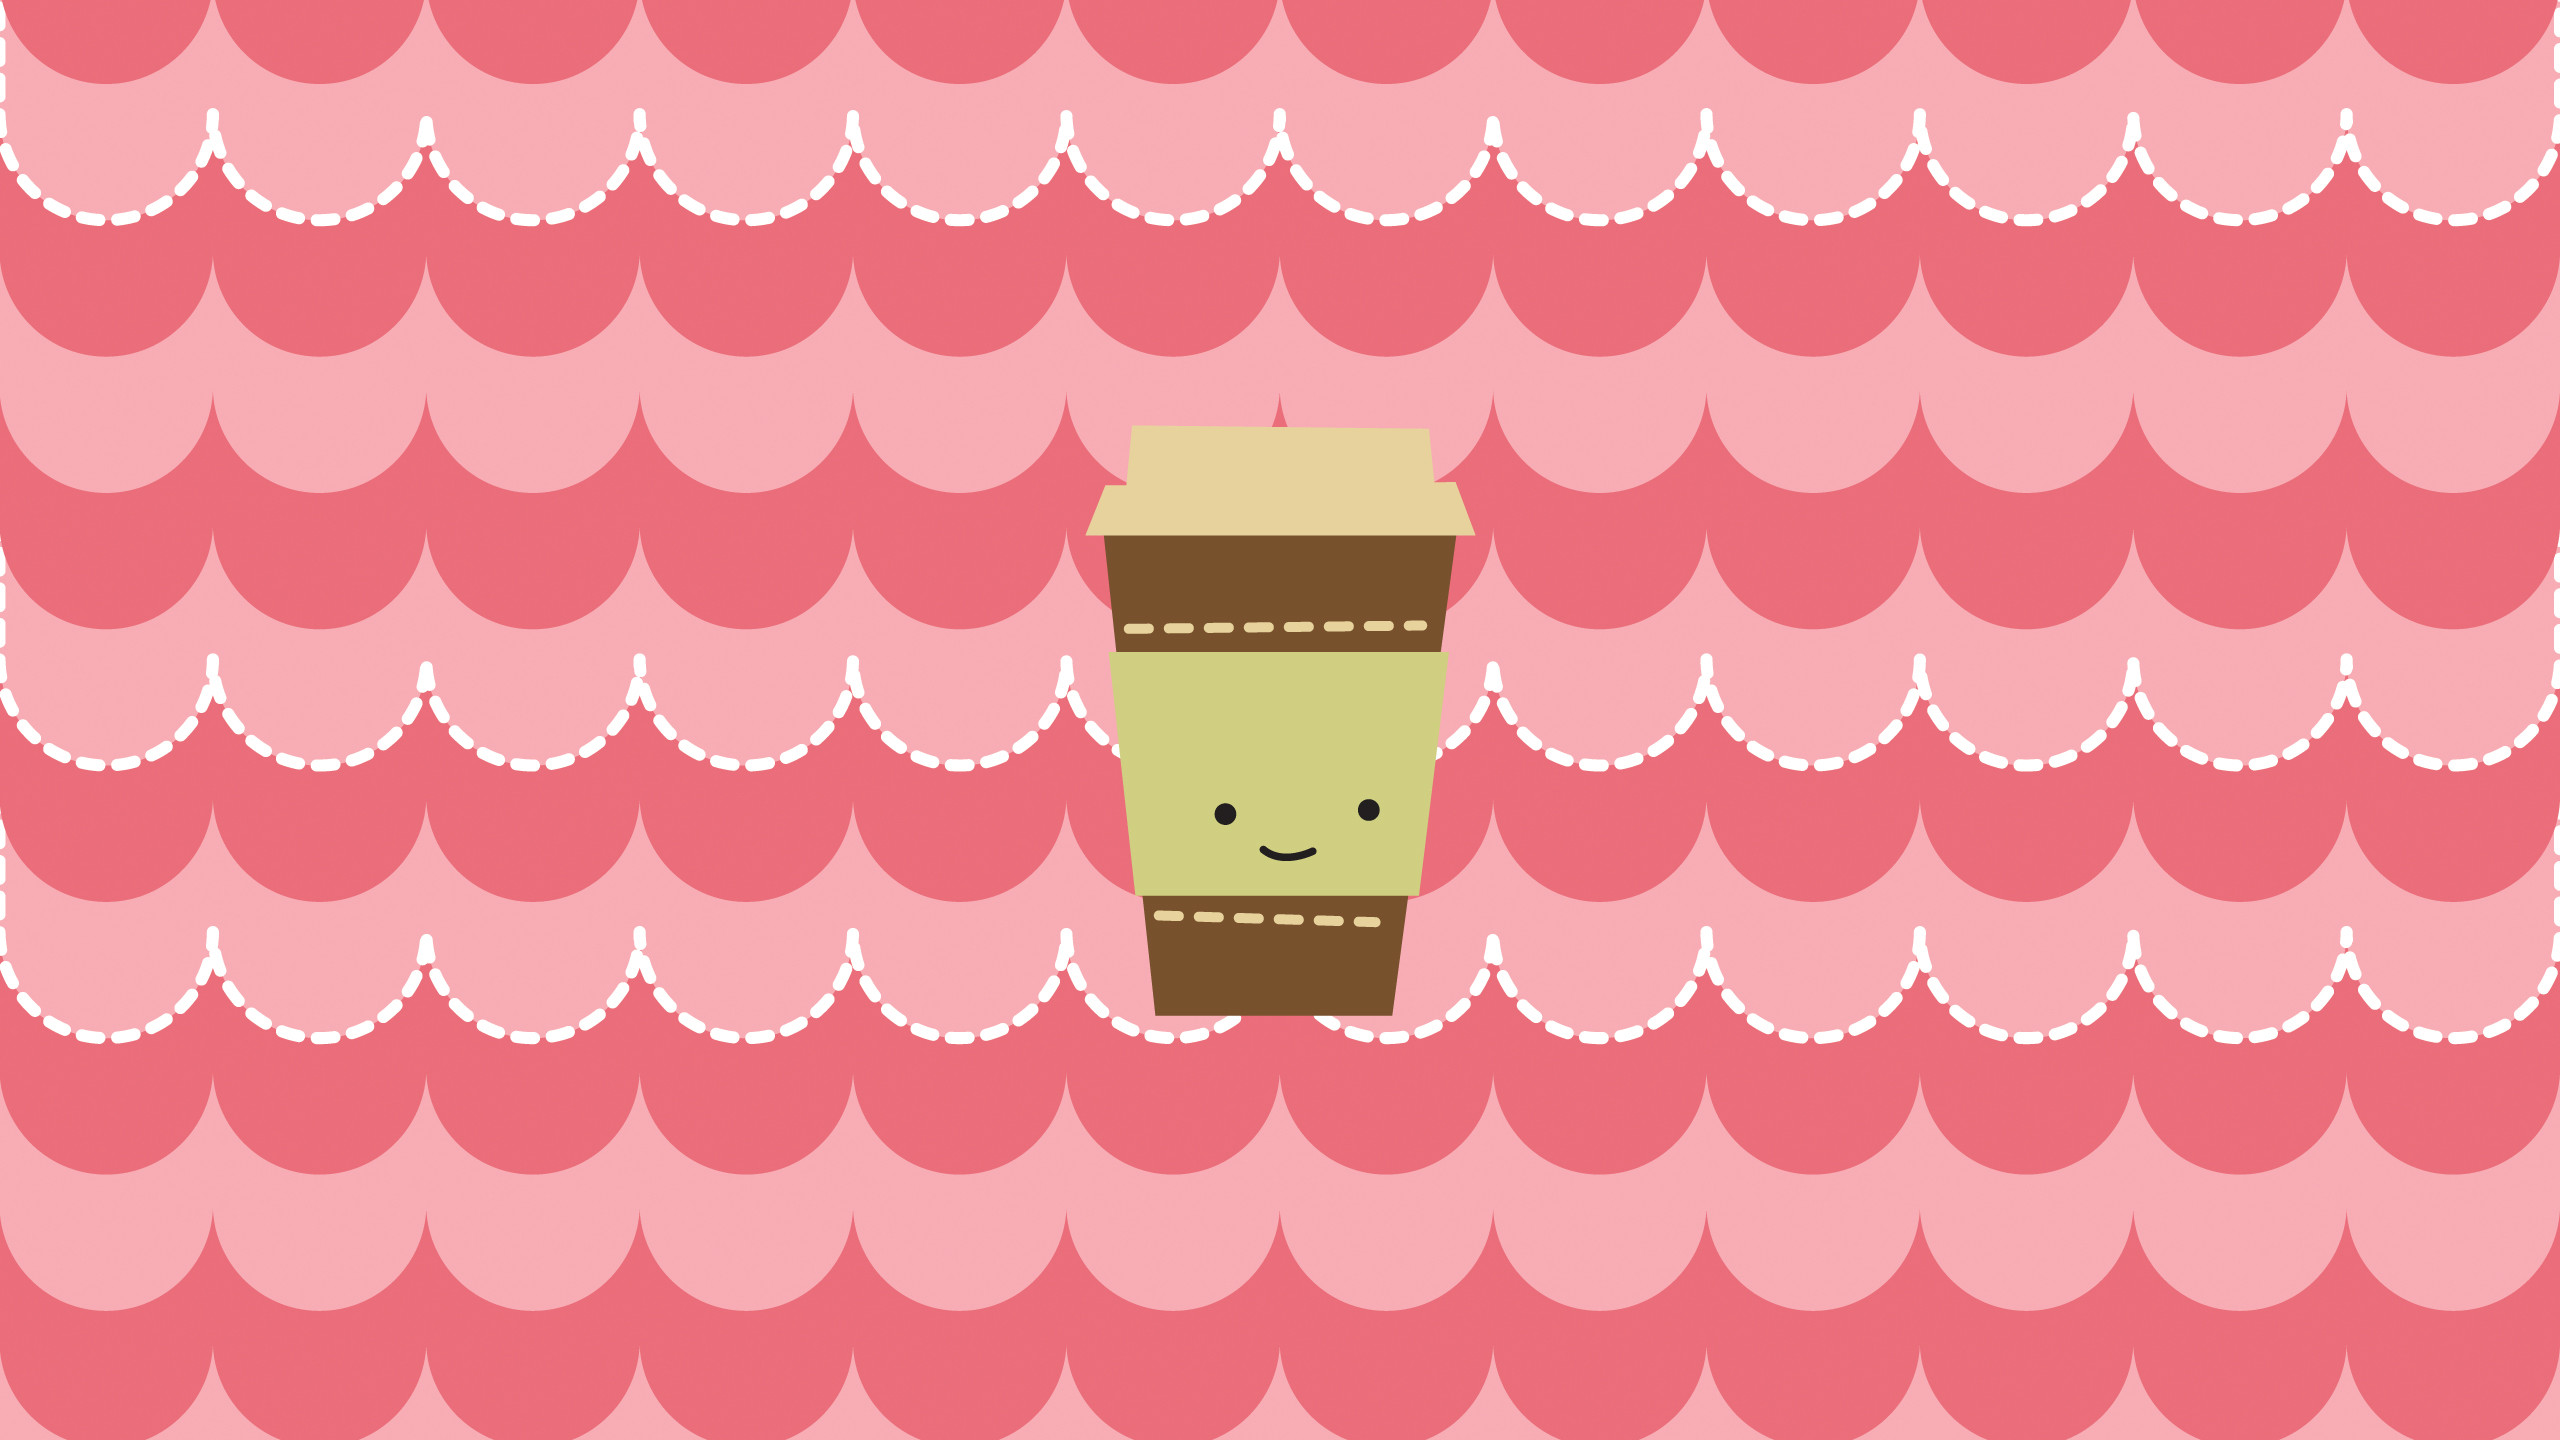 Cute Sweet Wallpapers For Phone Cute Cupcake Background 183 ①